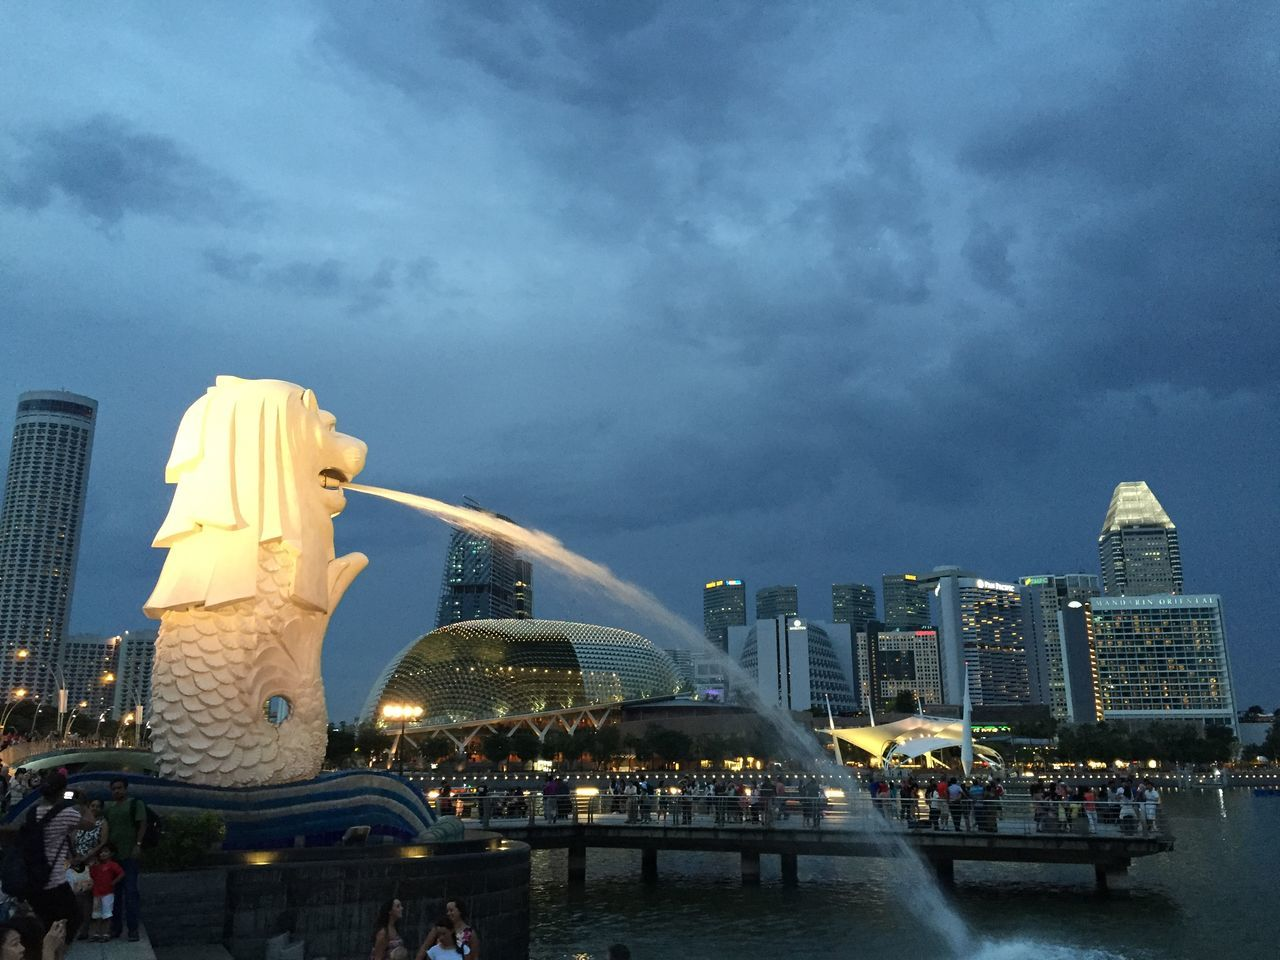 Water Coming Out From Merlion Statue Against Buildings And Sky At Park